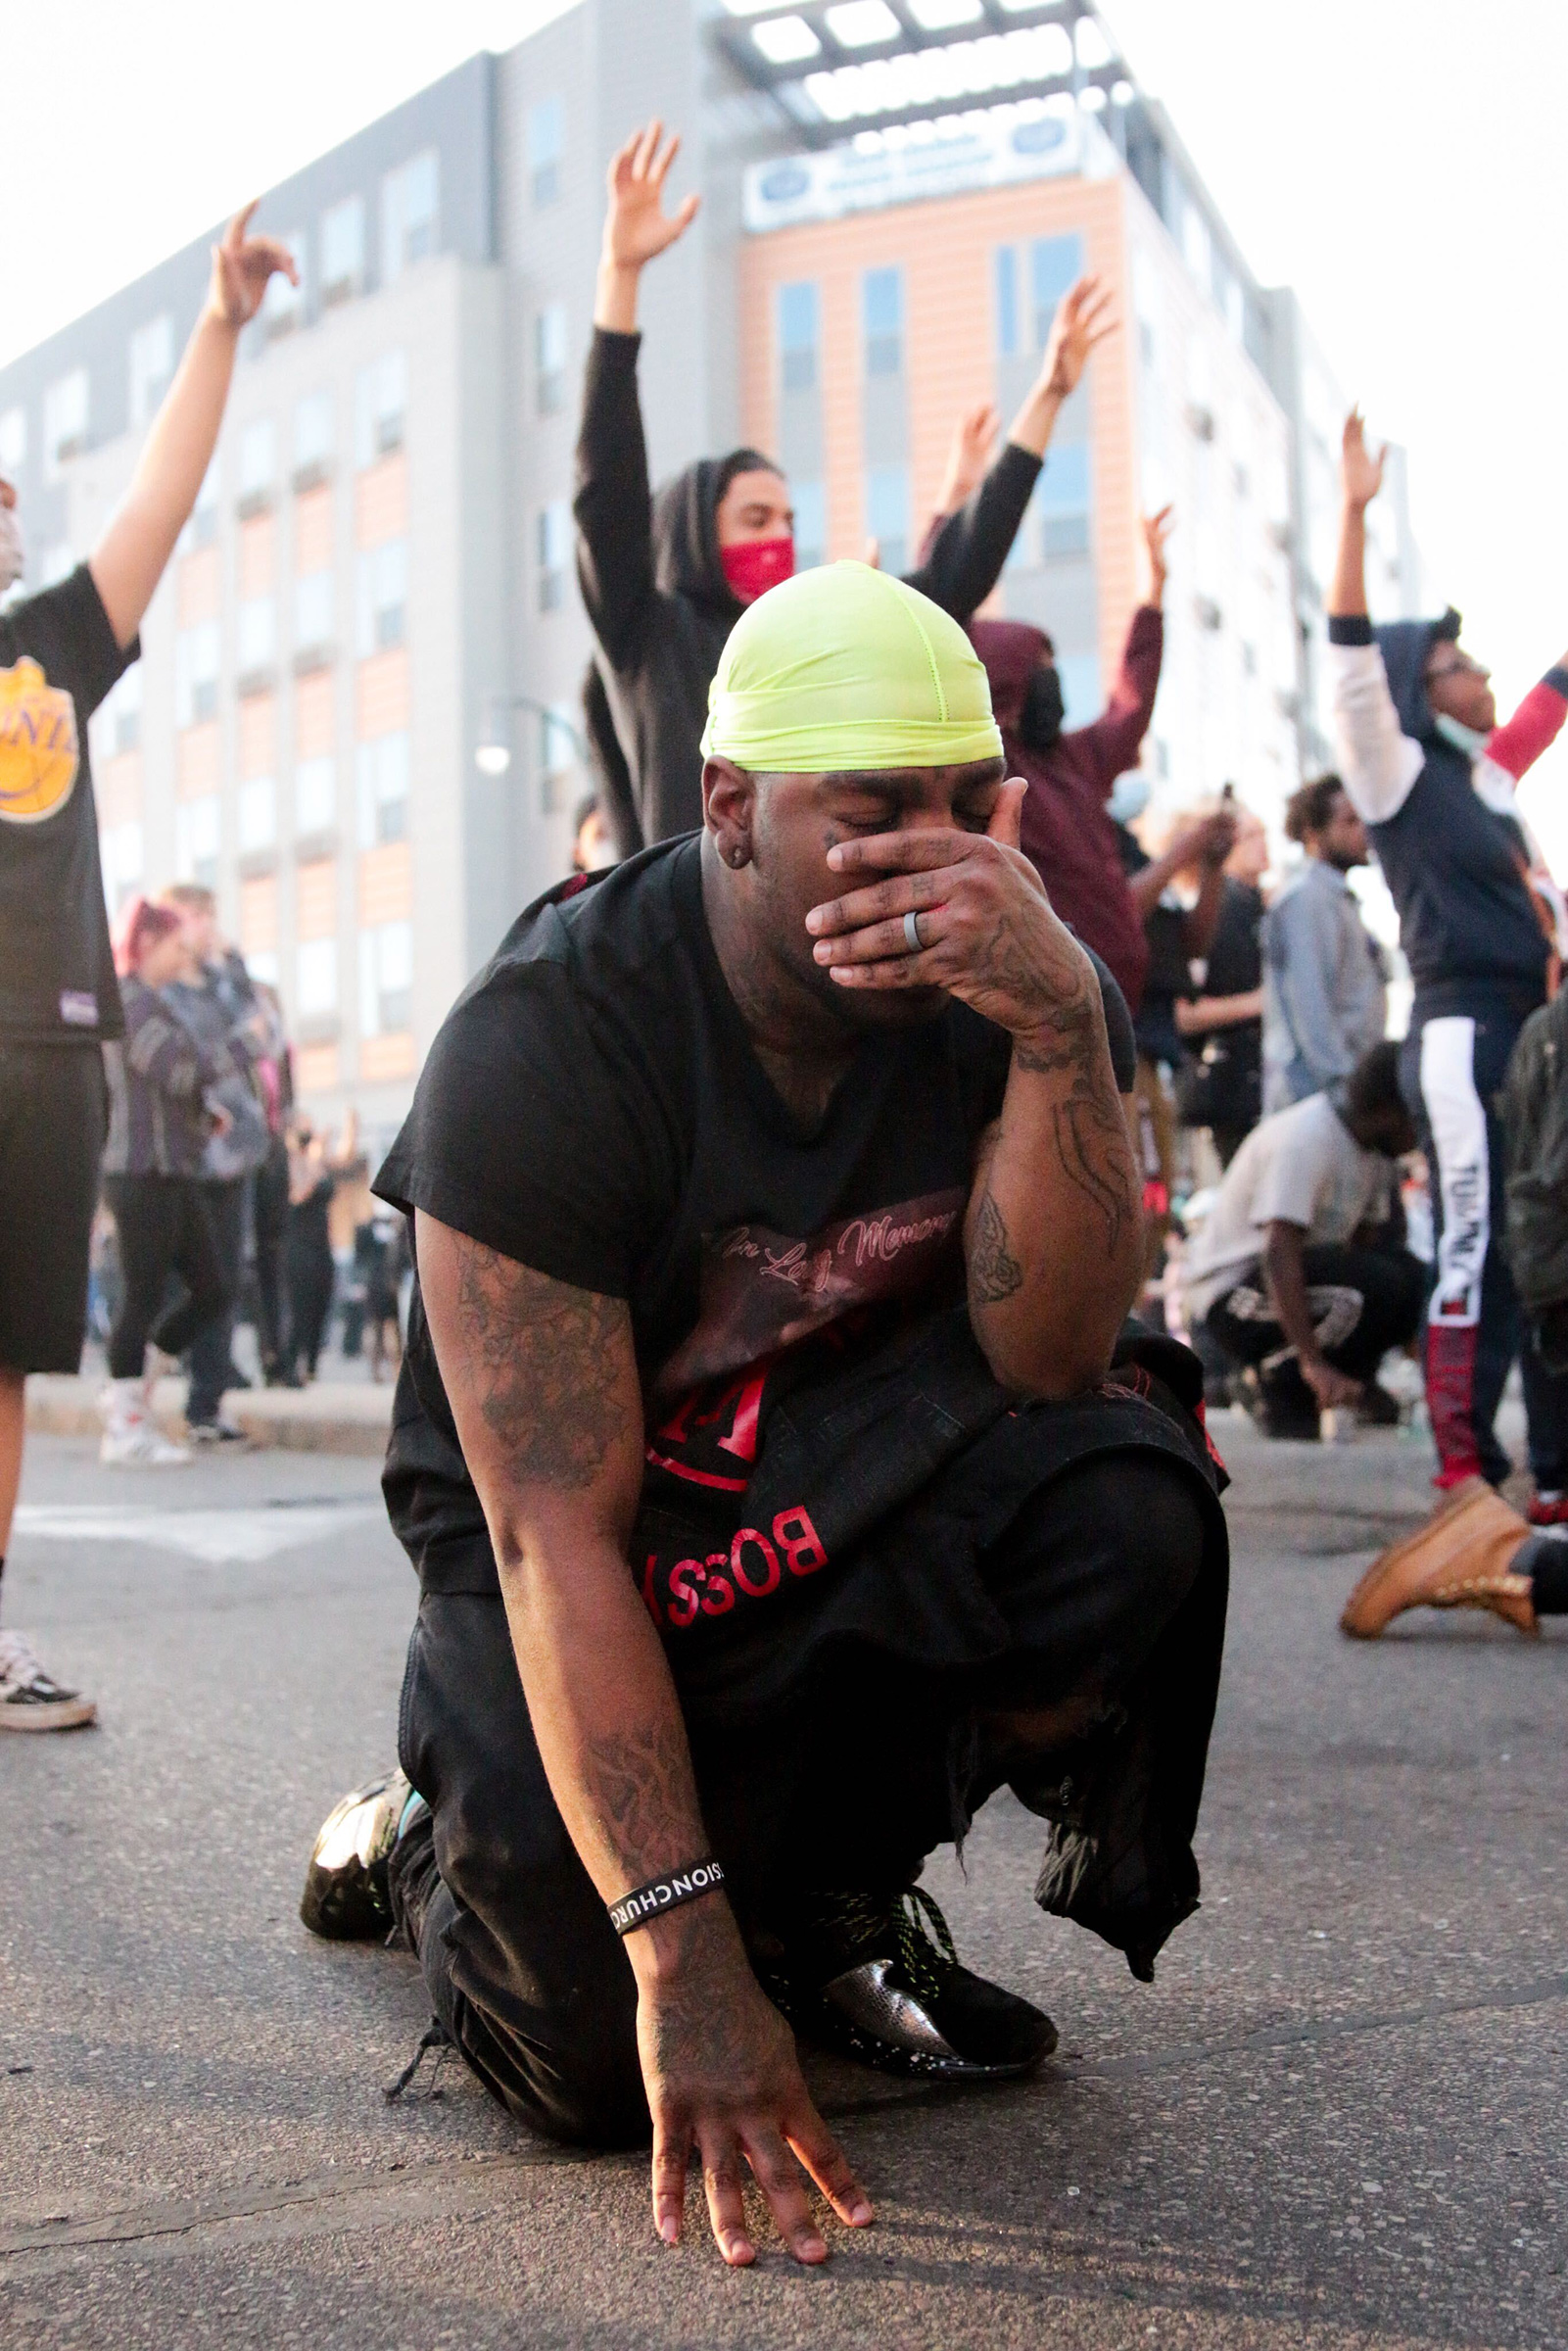 A protester has an emotional moment in Minneapolis on May 29, four days after George Floyd was killed.